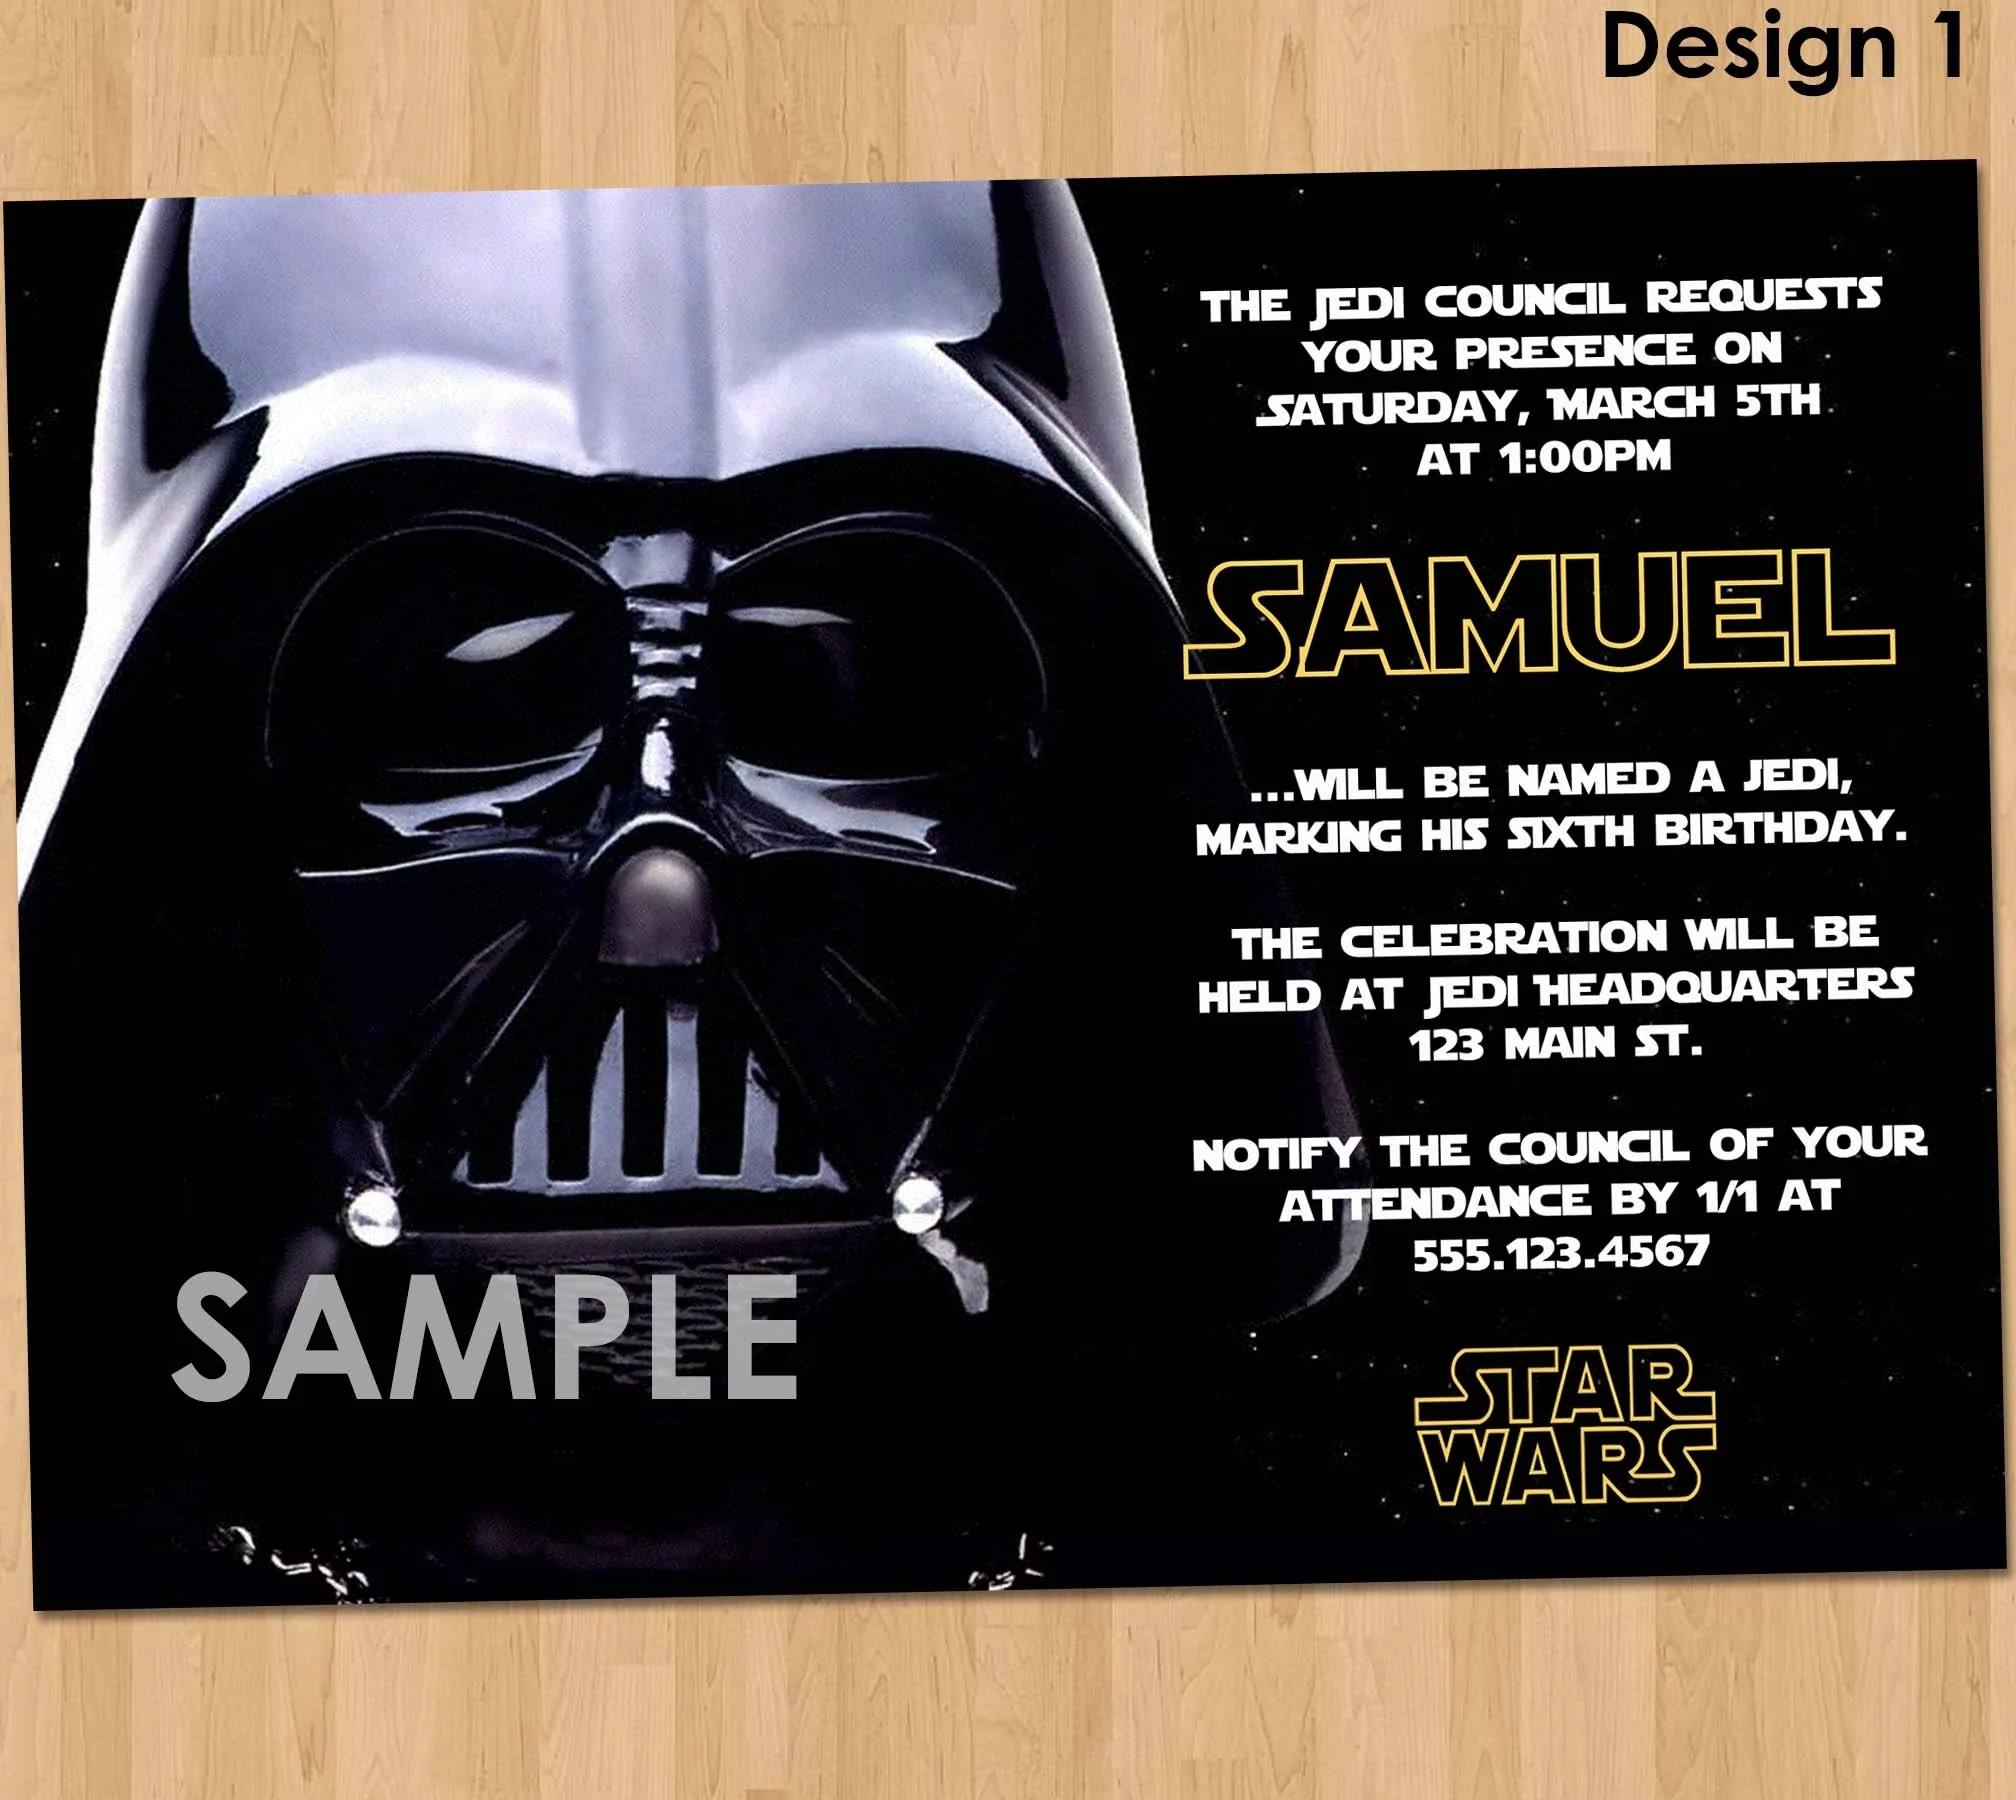 star wars party invitation star wars party printable star wars invitation star wars birthday party darth vader birthday party